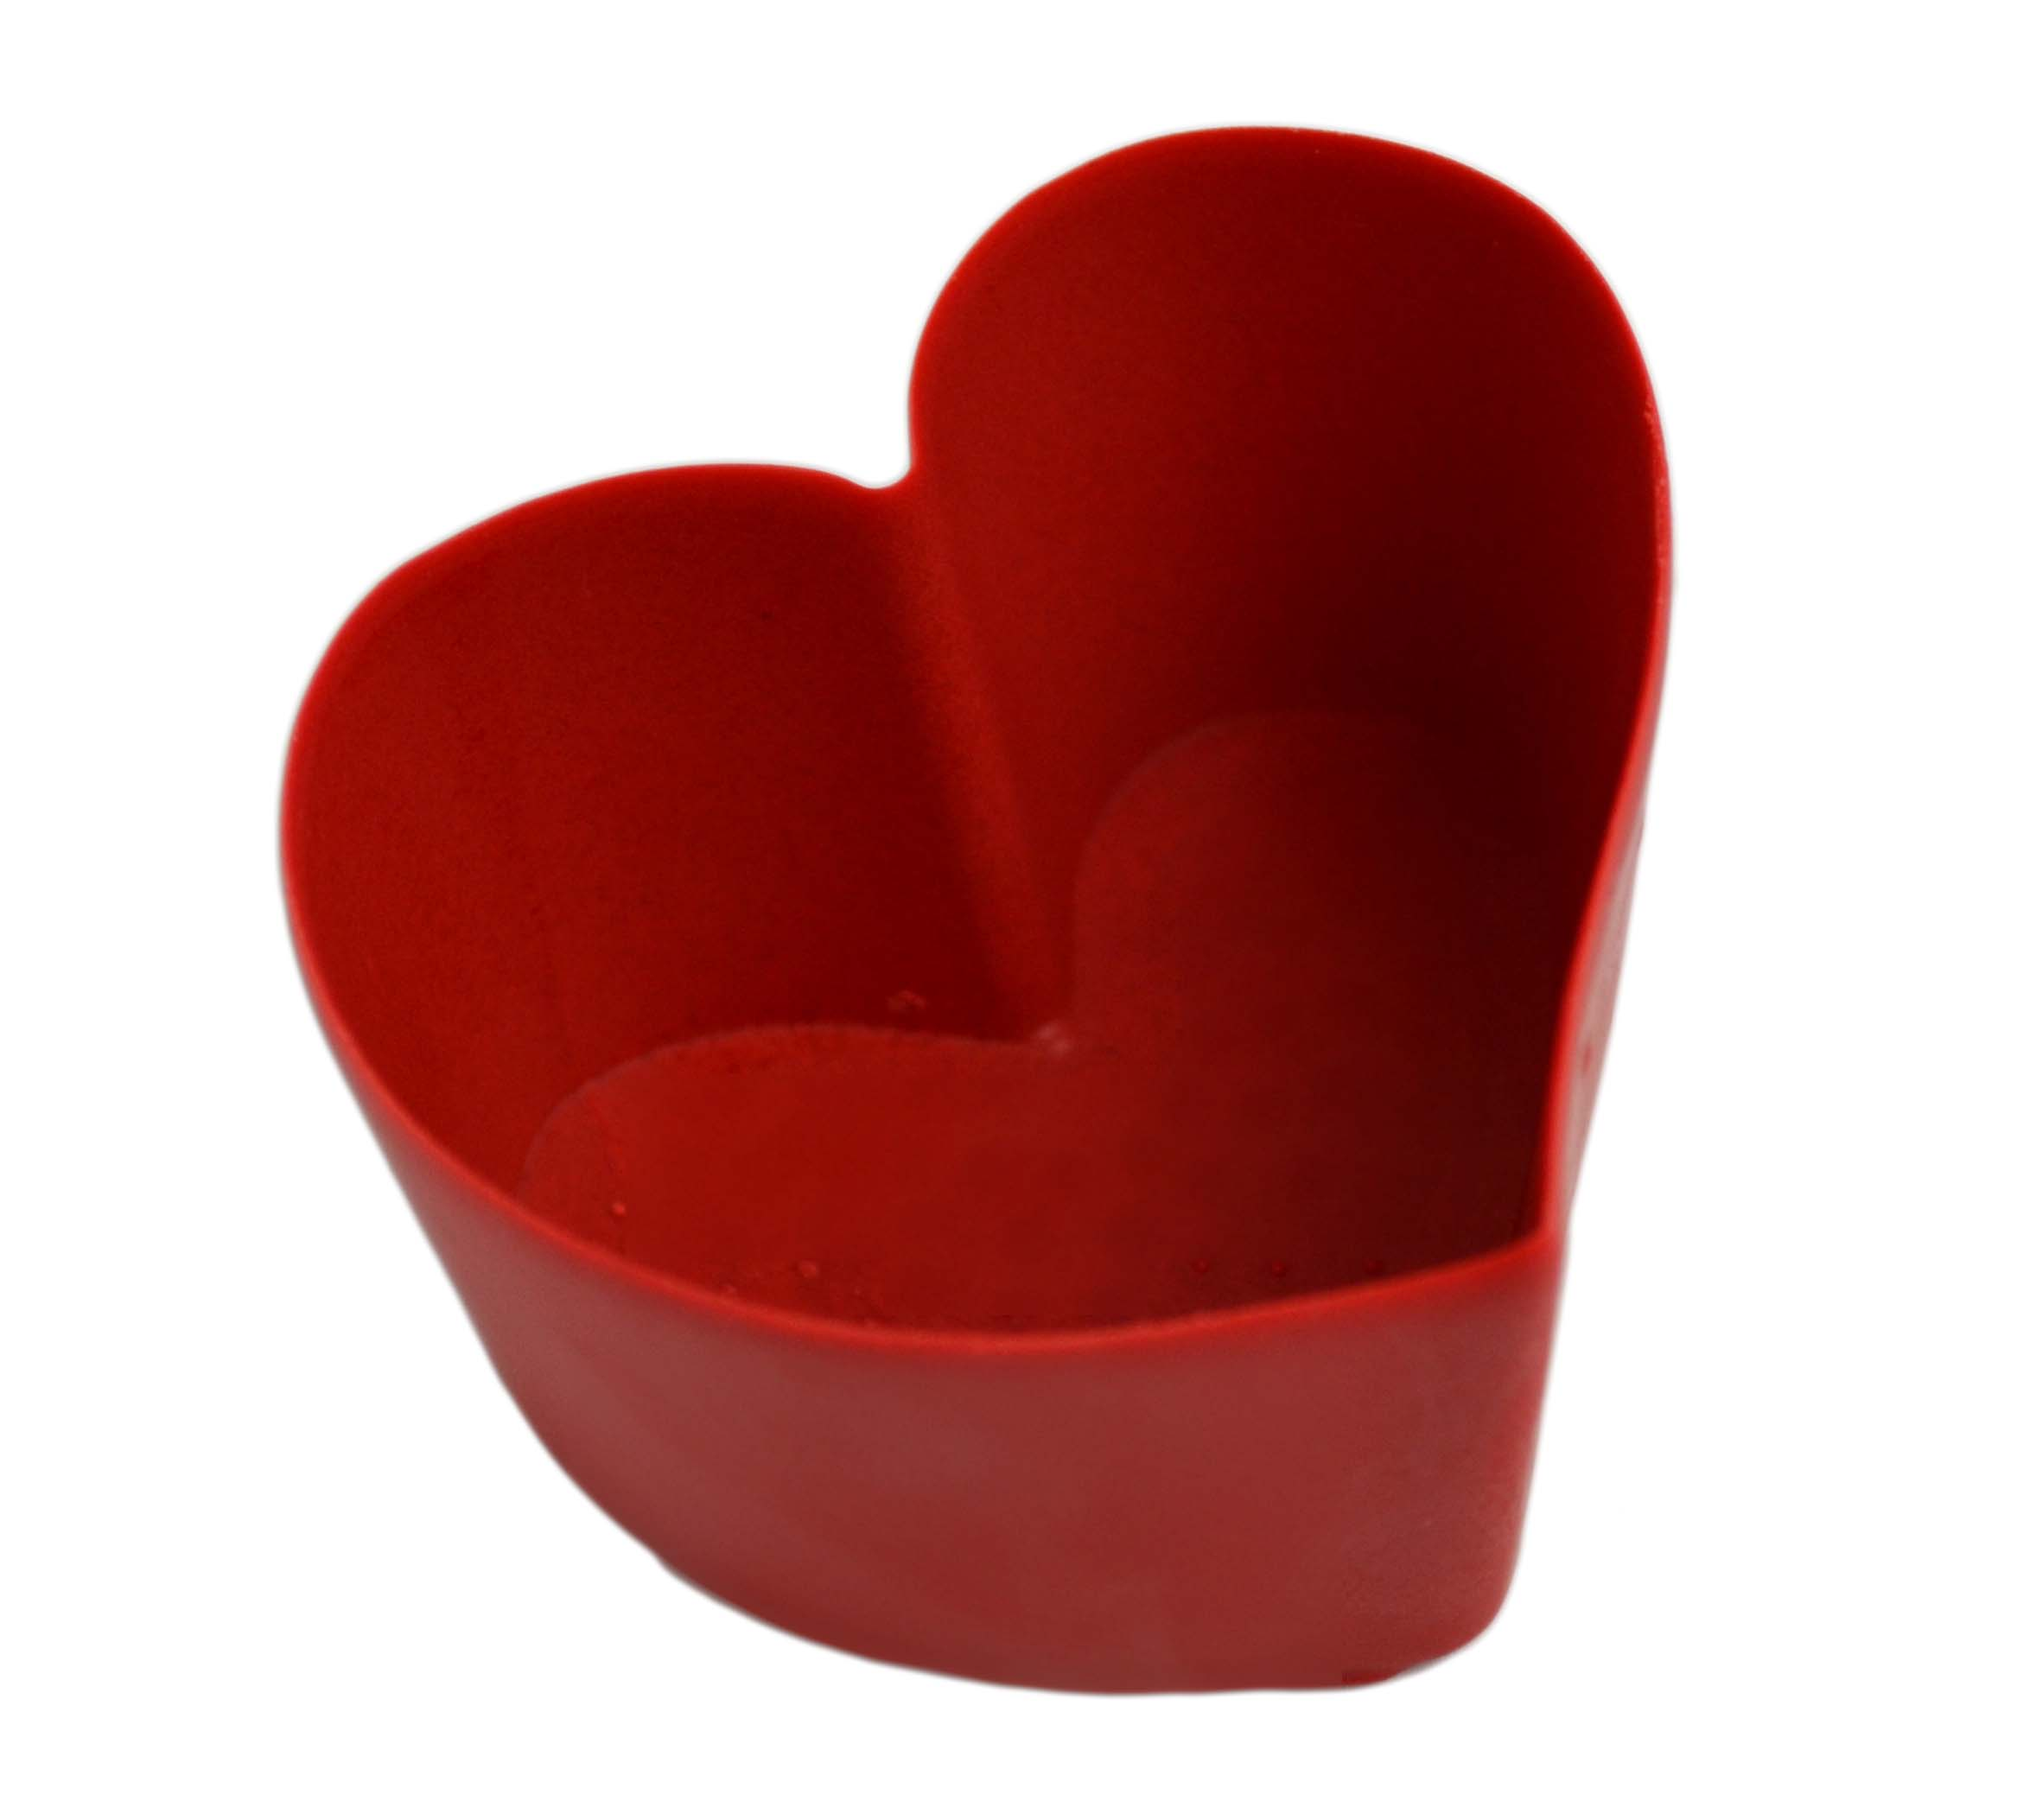 Assortment cups - Red Heart Cup